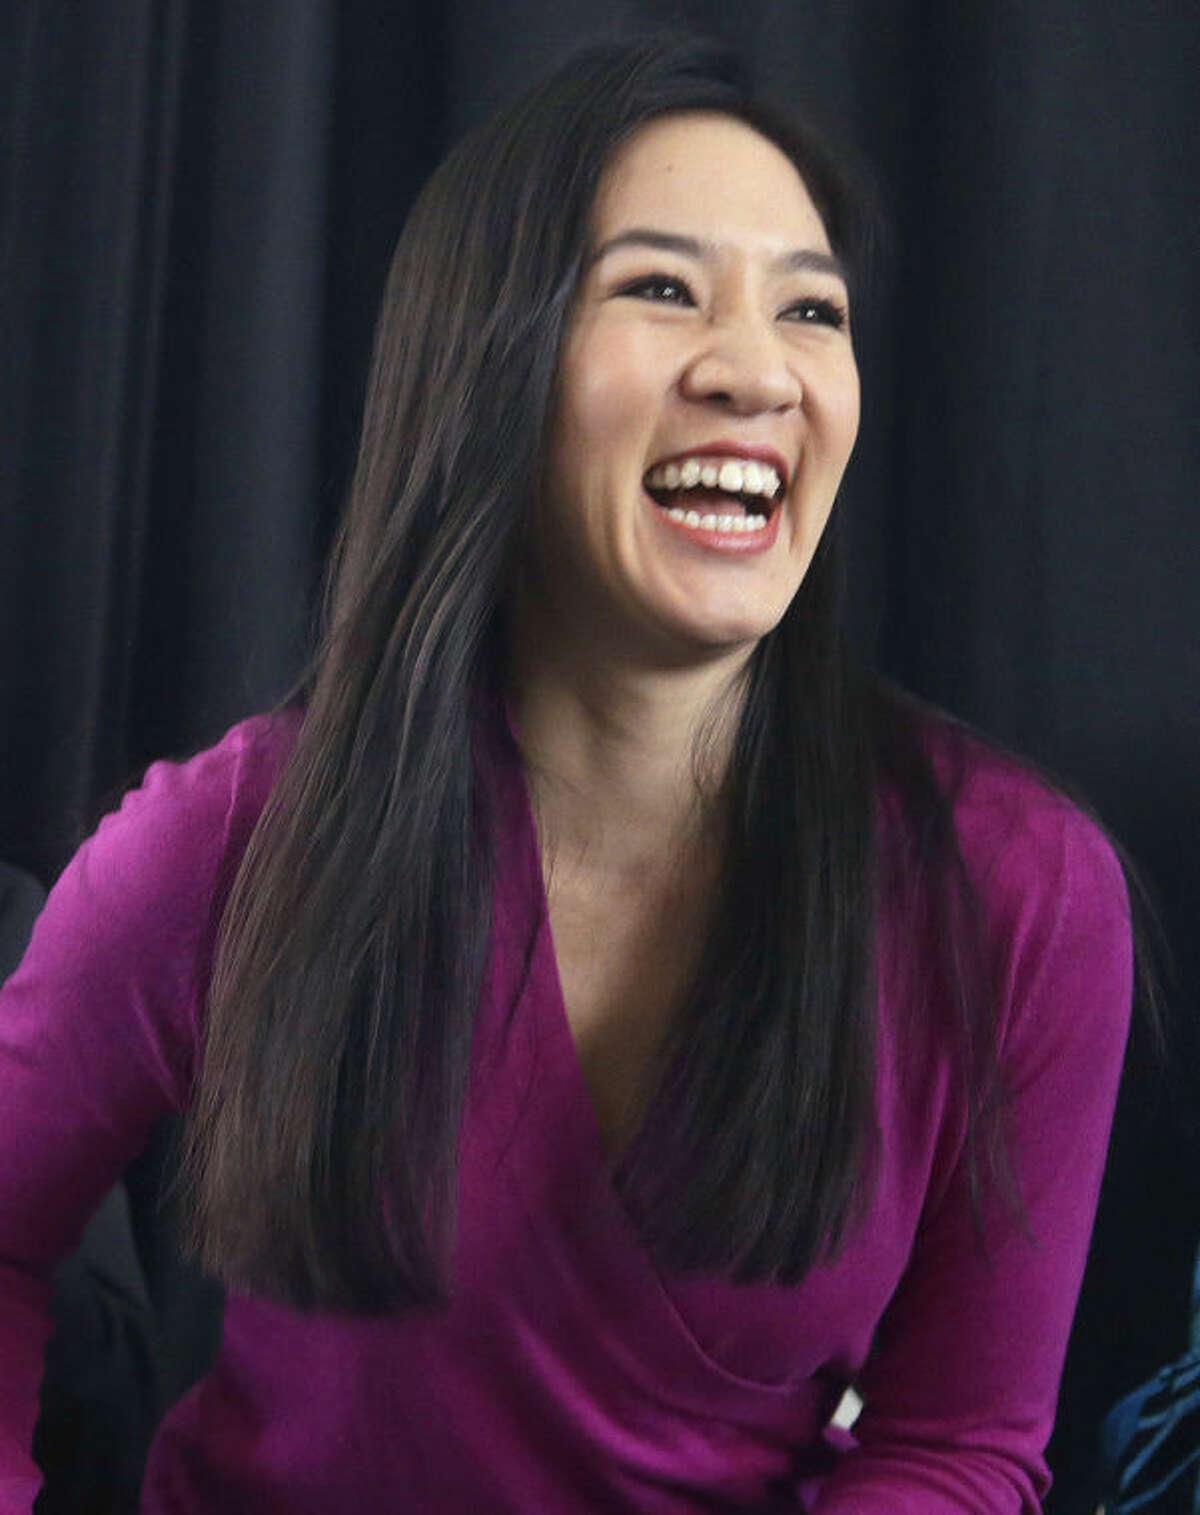 FILE - In this Jan. 28, 2014 file photo, two-time Olympic figure skating medalist Michelle Kwan smiles as she prepares to introduce her husband Clay Pell during his announcement for a run at the governorship of the state of Rhode Island, in Providence, RI. On Monday, March 7, 2014, Kwan was to be surrounded by more than a dozen of her fellow champions and honored by the unique Figure Skating in Harlem, a program for which she has provided inspiration for 16 years. (AP Photo/Stephan Savoia, File)